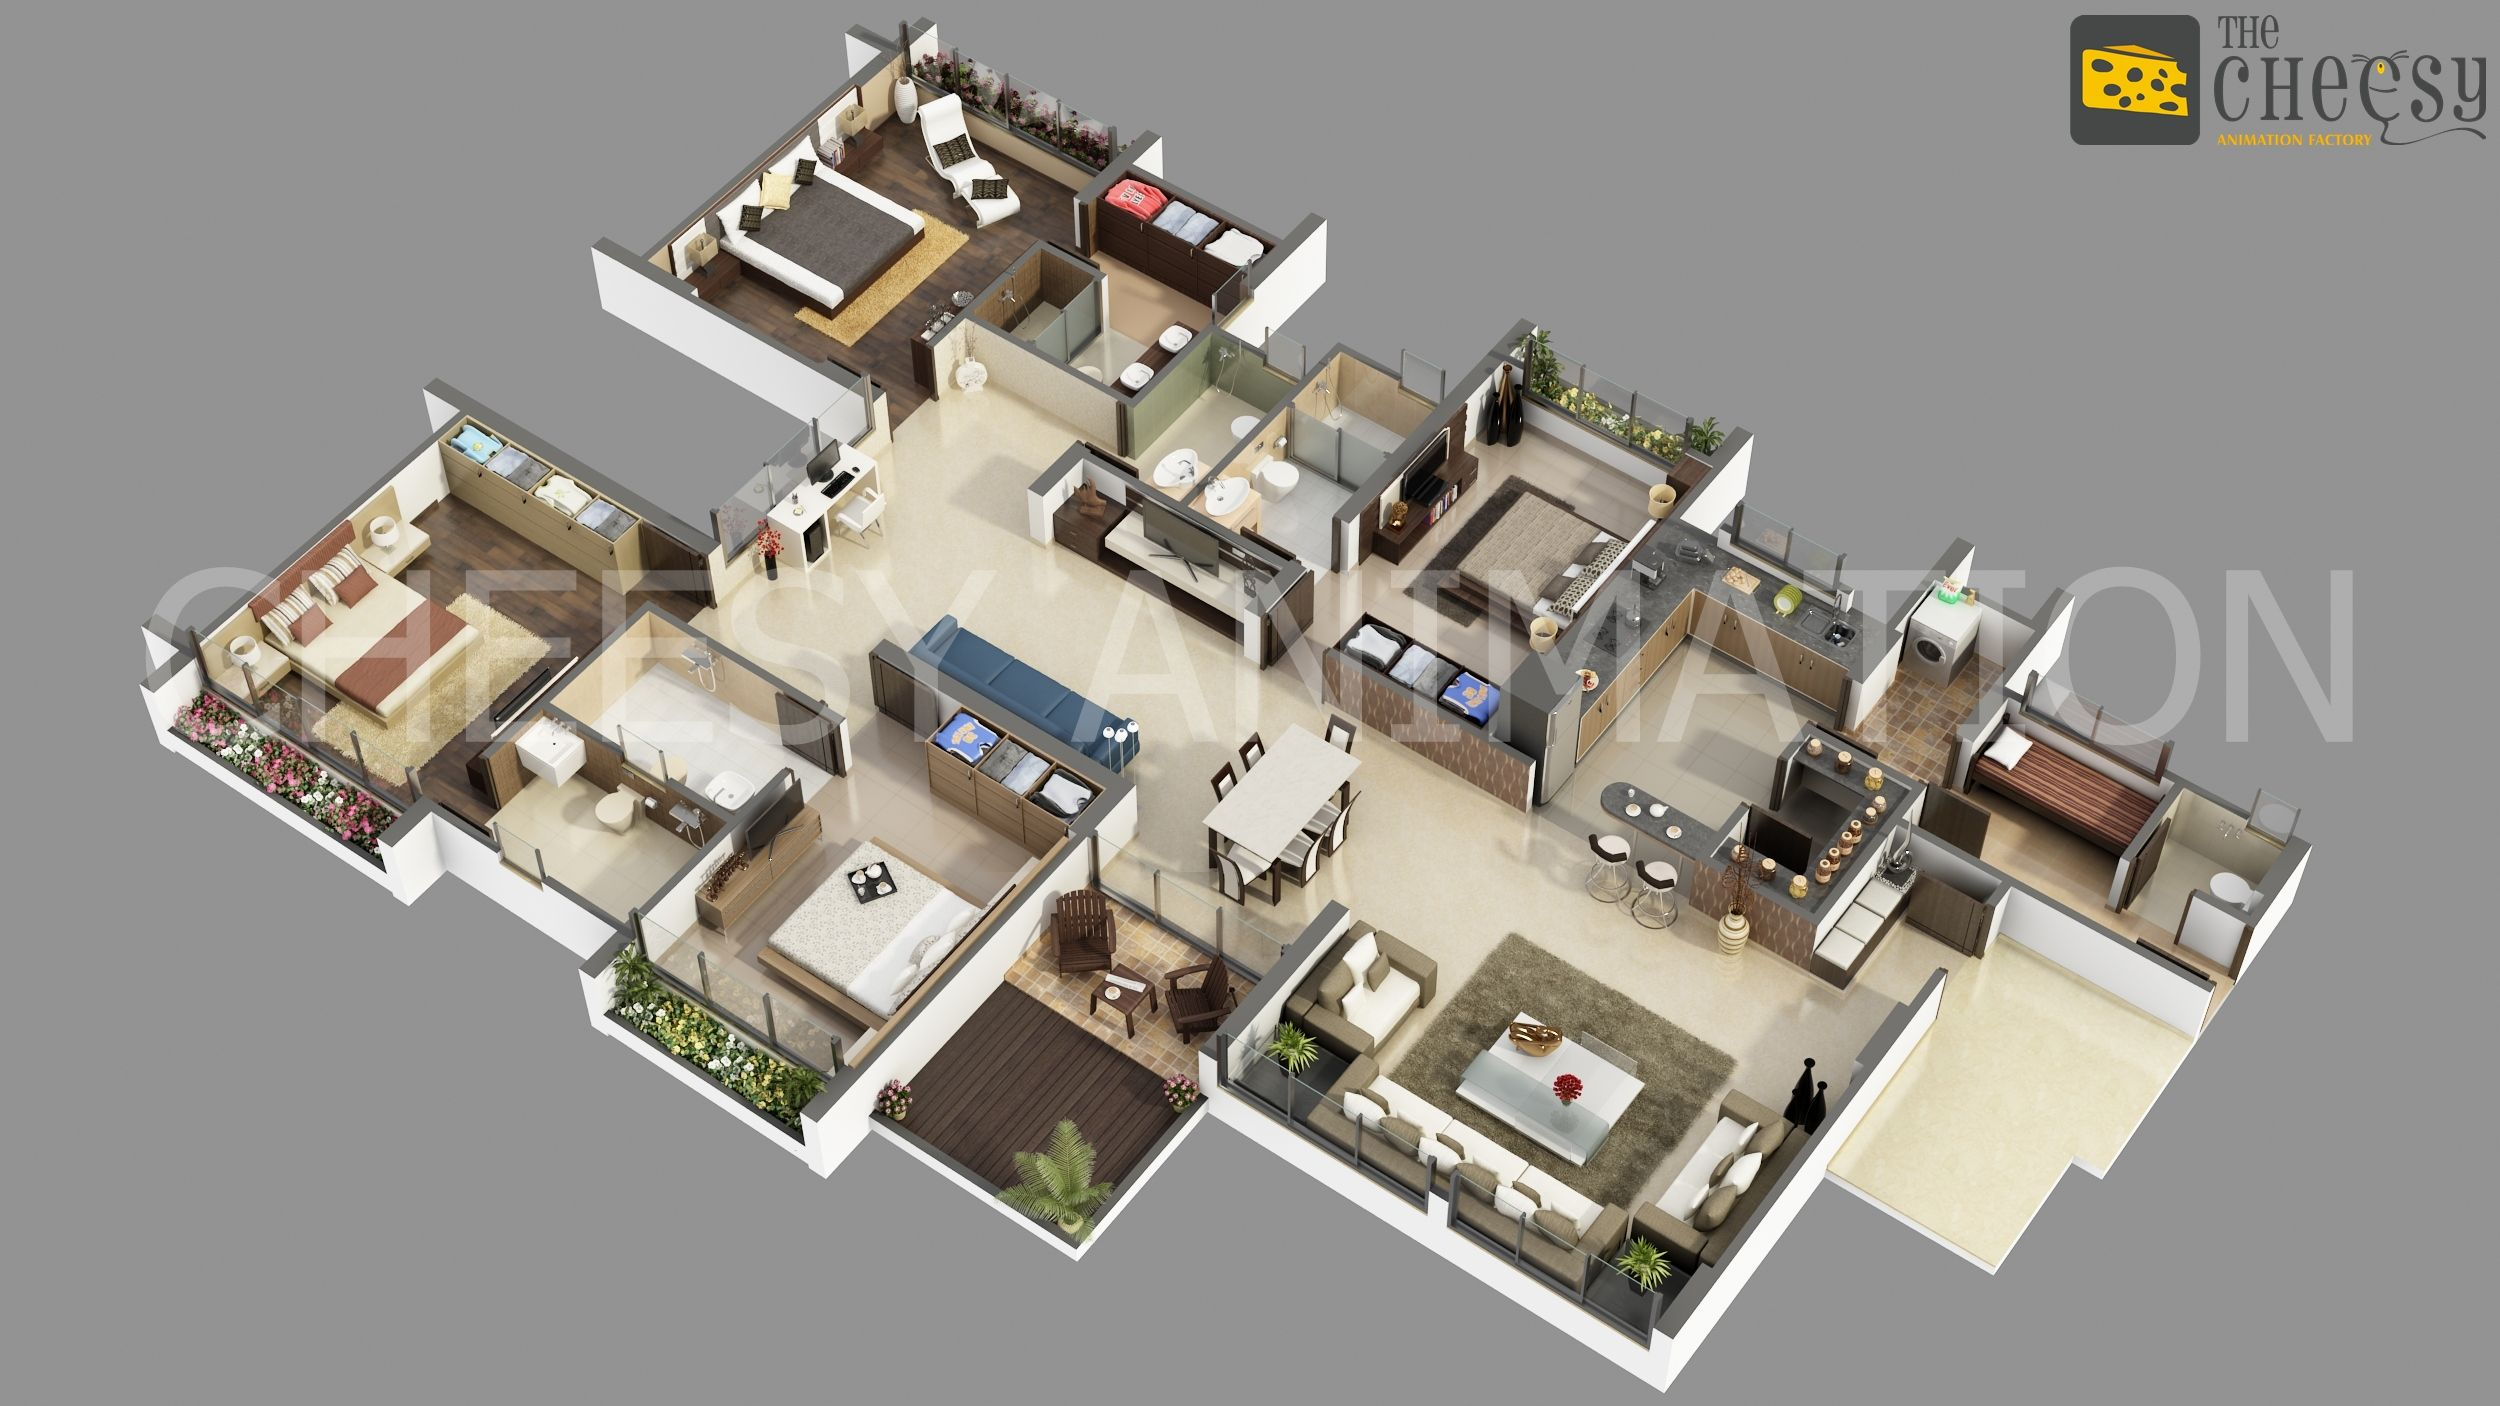 Pin By Zhang Wei On 3d House Plans Floor Plans Best Home Design Software Home Design Software Home Building Design